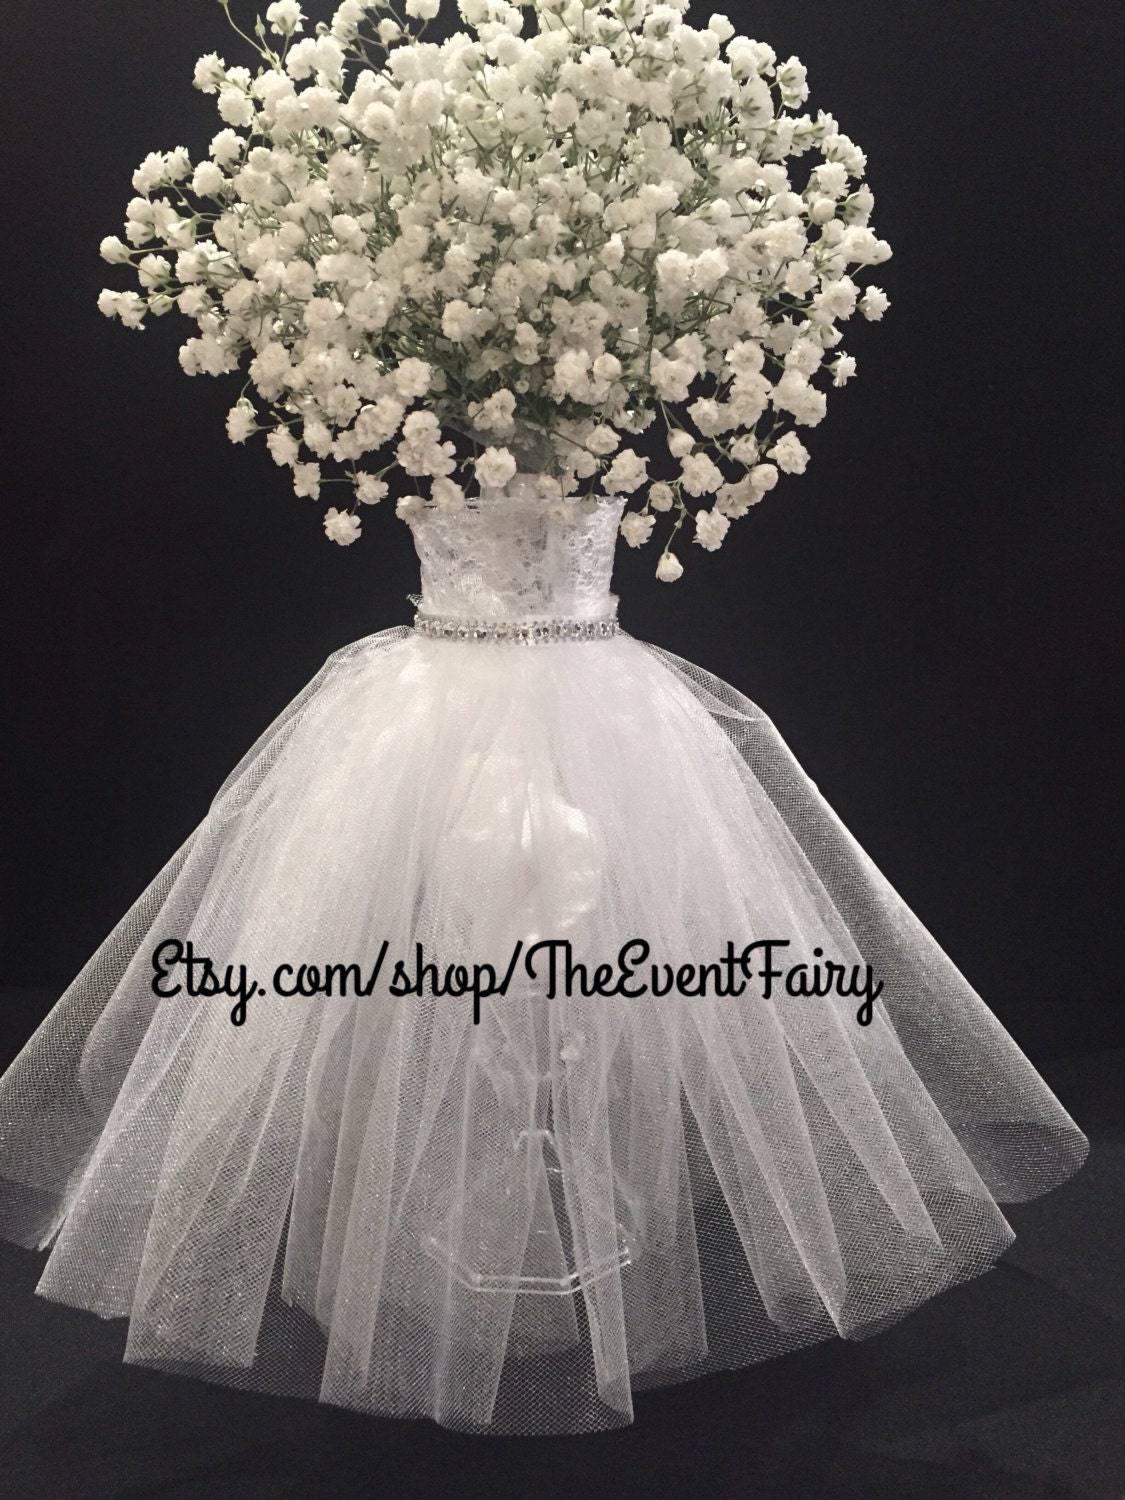 Centerpiece wedding dress vase for Wedding dress vase centerpiece